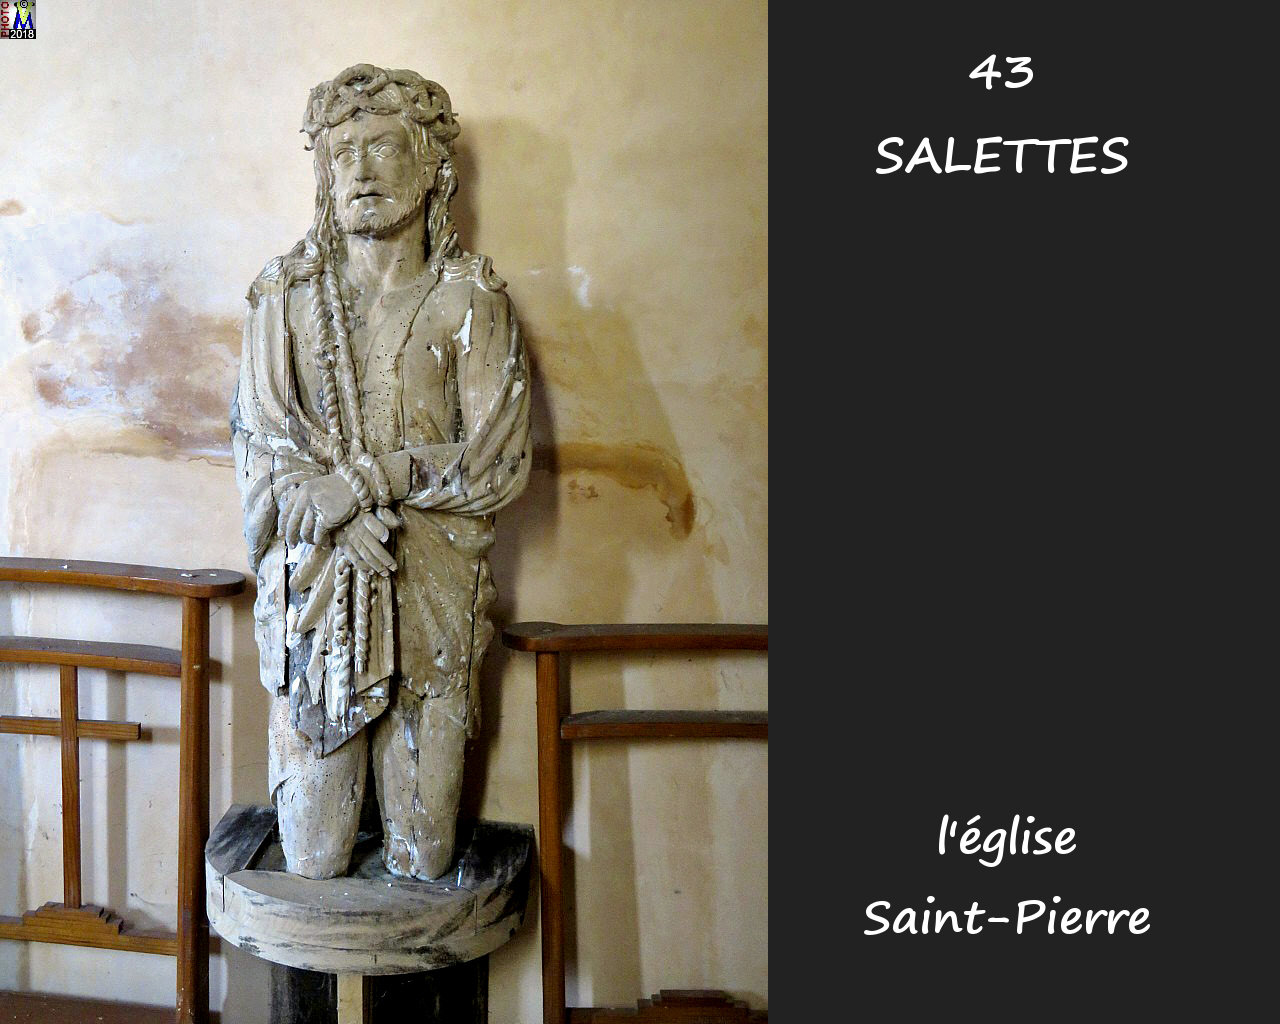 43SALETTES_eglise_252.jpg